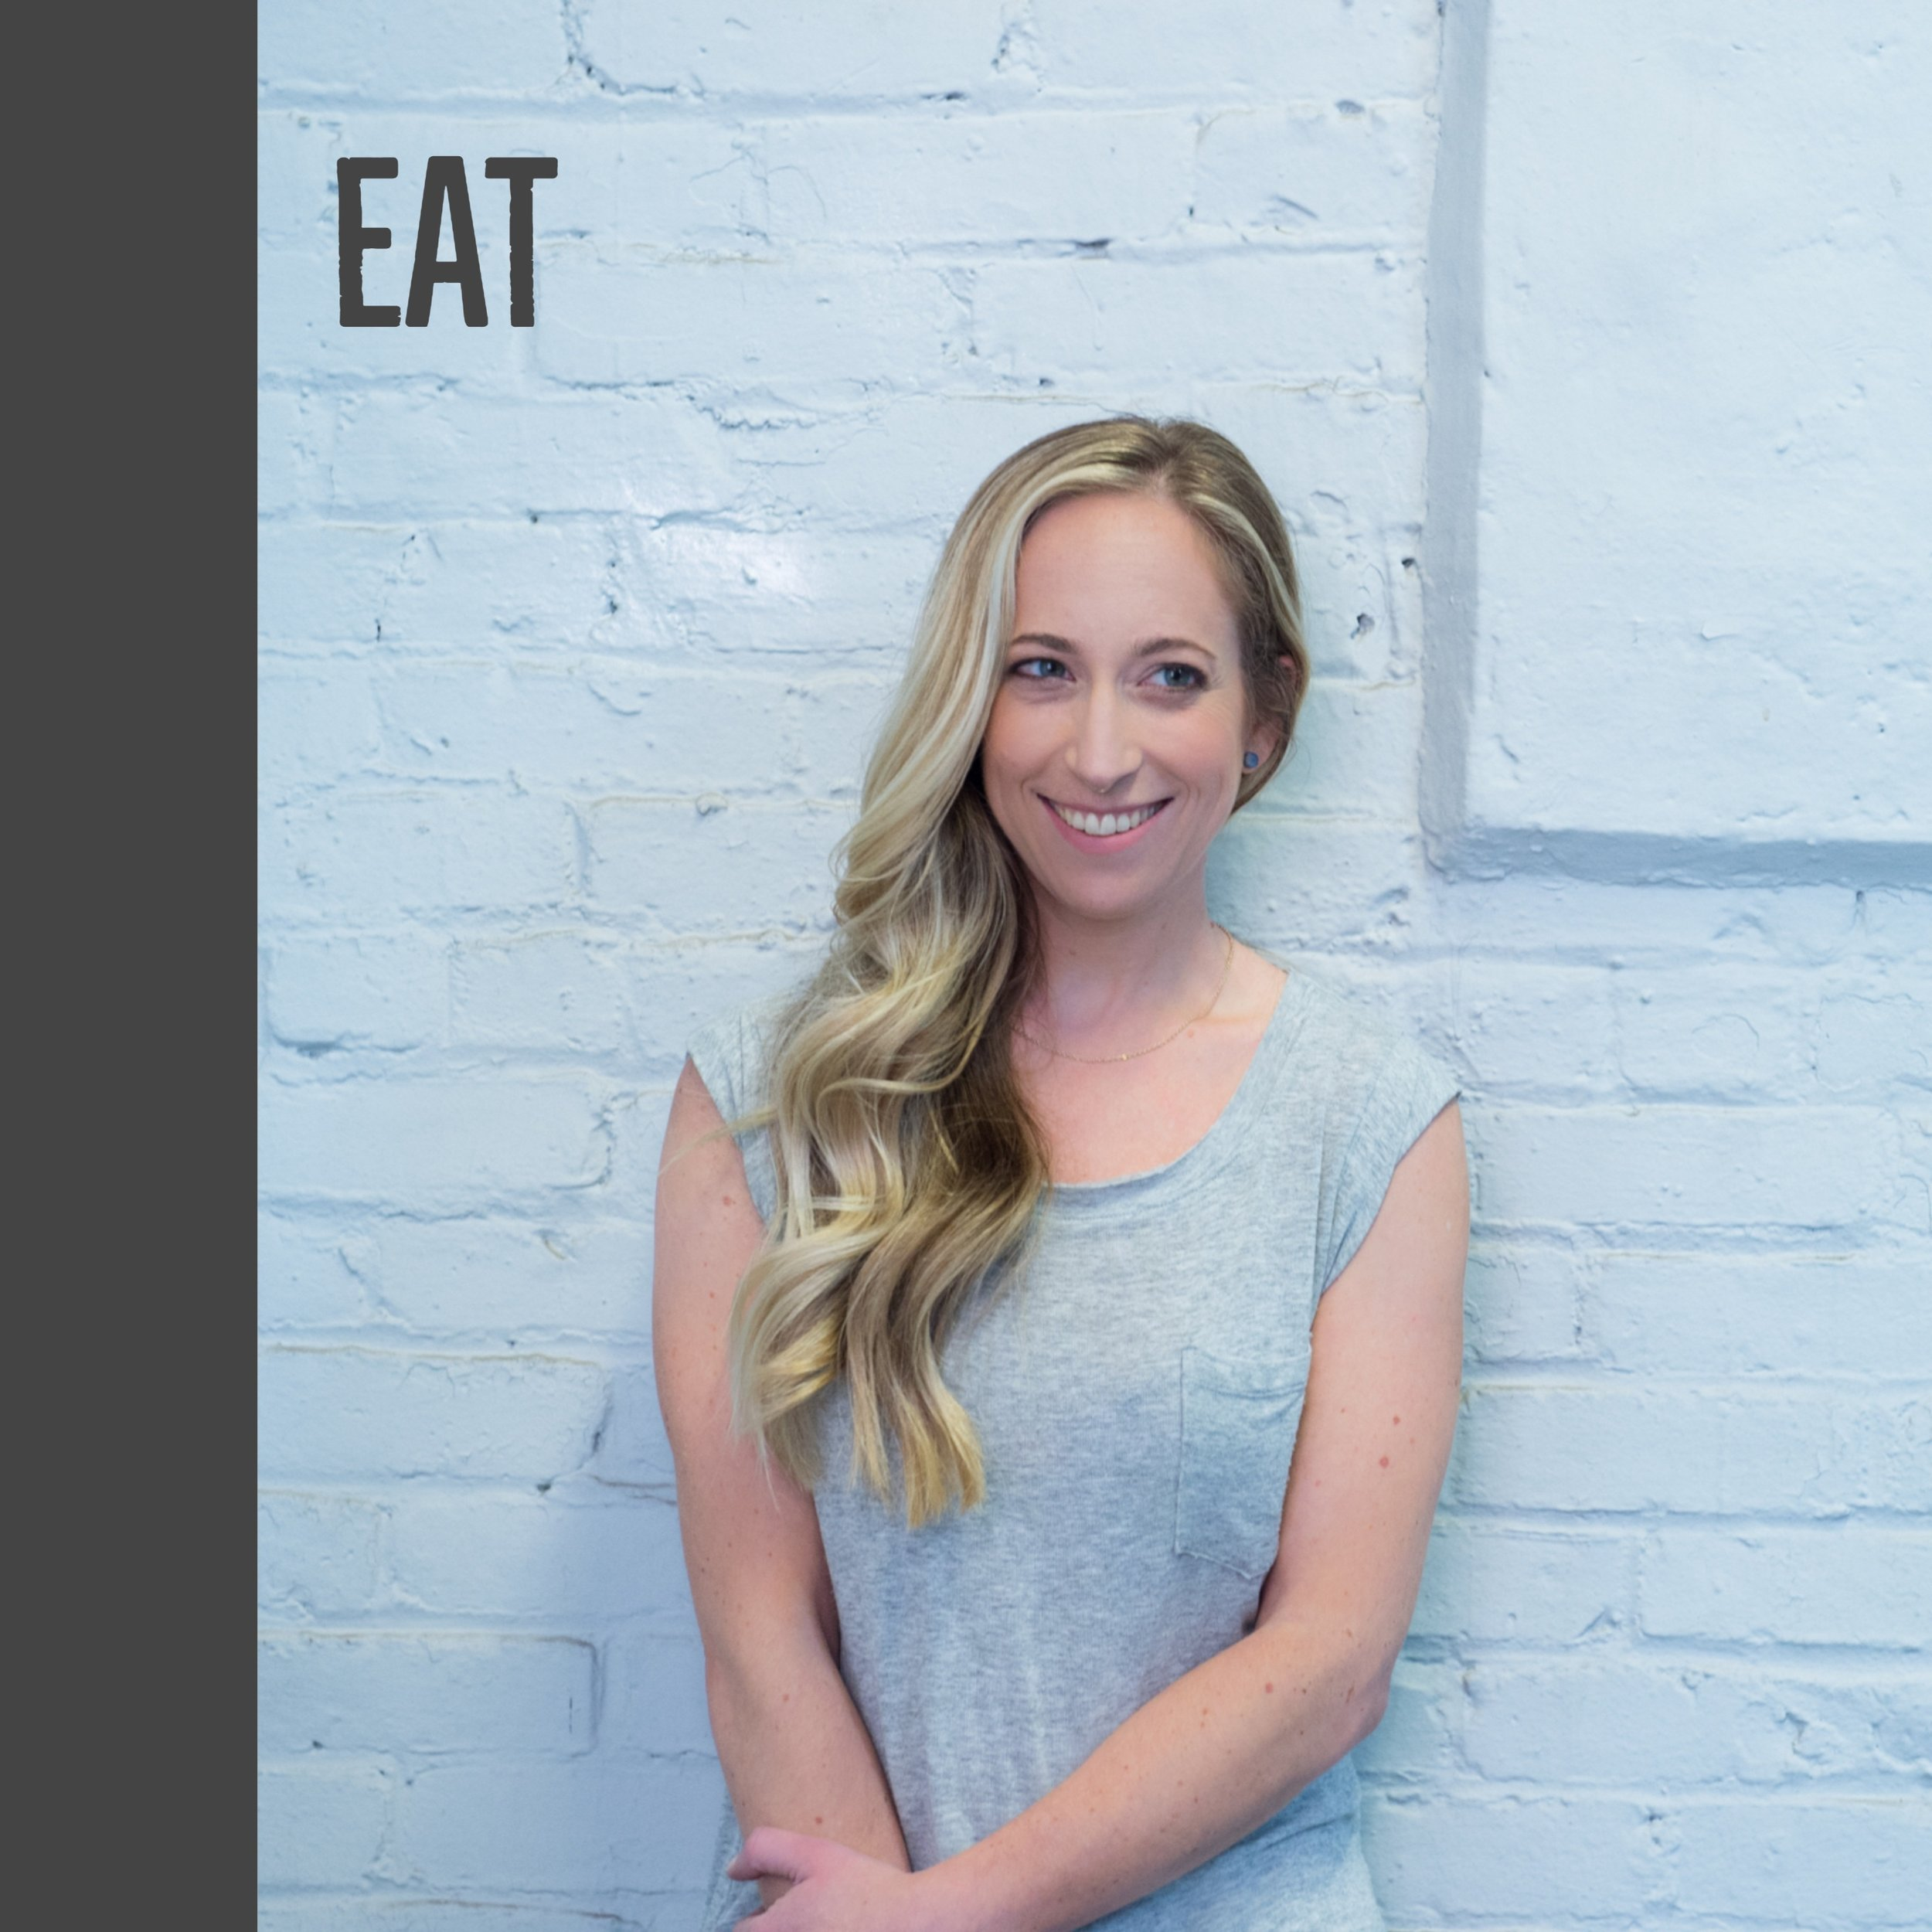 Julie owns Starr Yoga in Boston, MA and Hartford, CT. She is a nutrition expert and nationally recognized creator of individual and corporate wellness programs. She believes in real food for real people.